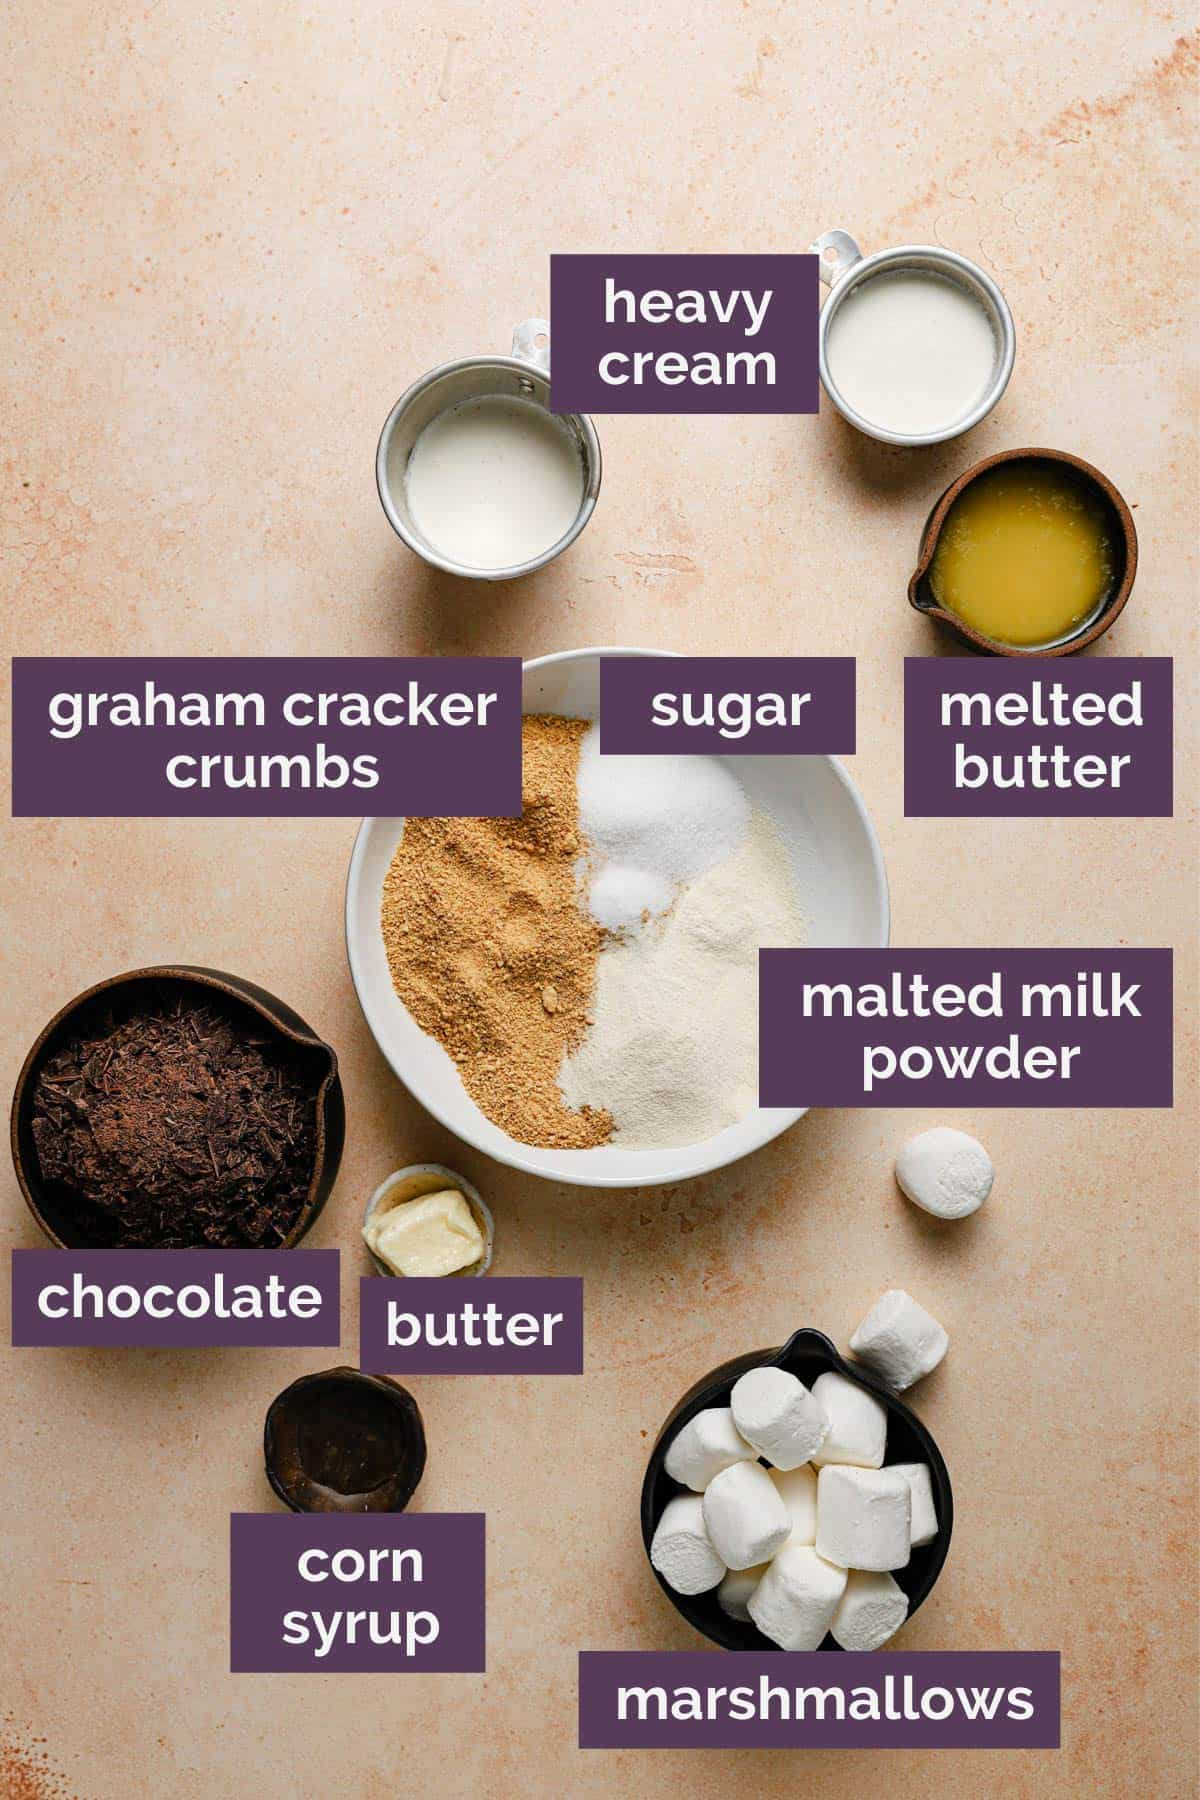 The ingredients for s'mores pie on a peach counter with purple labels for each ingredient.